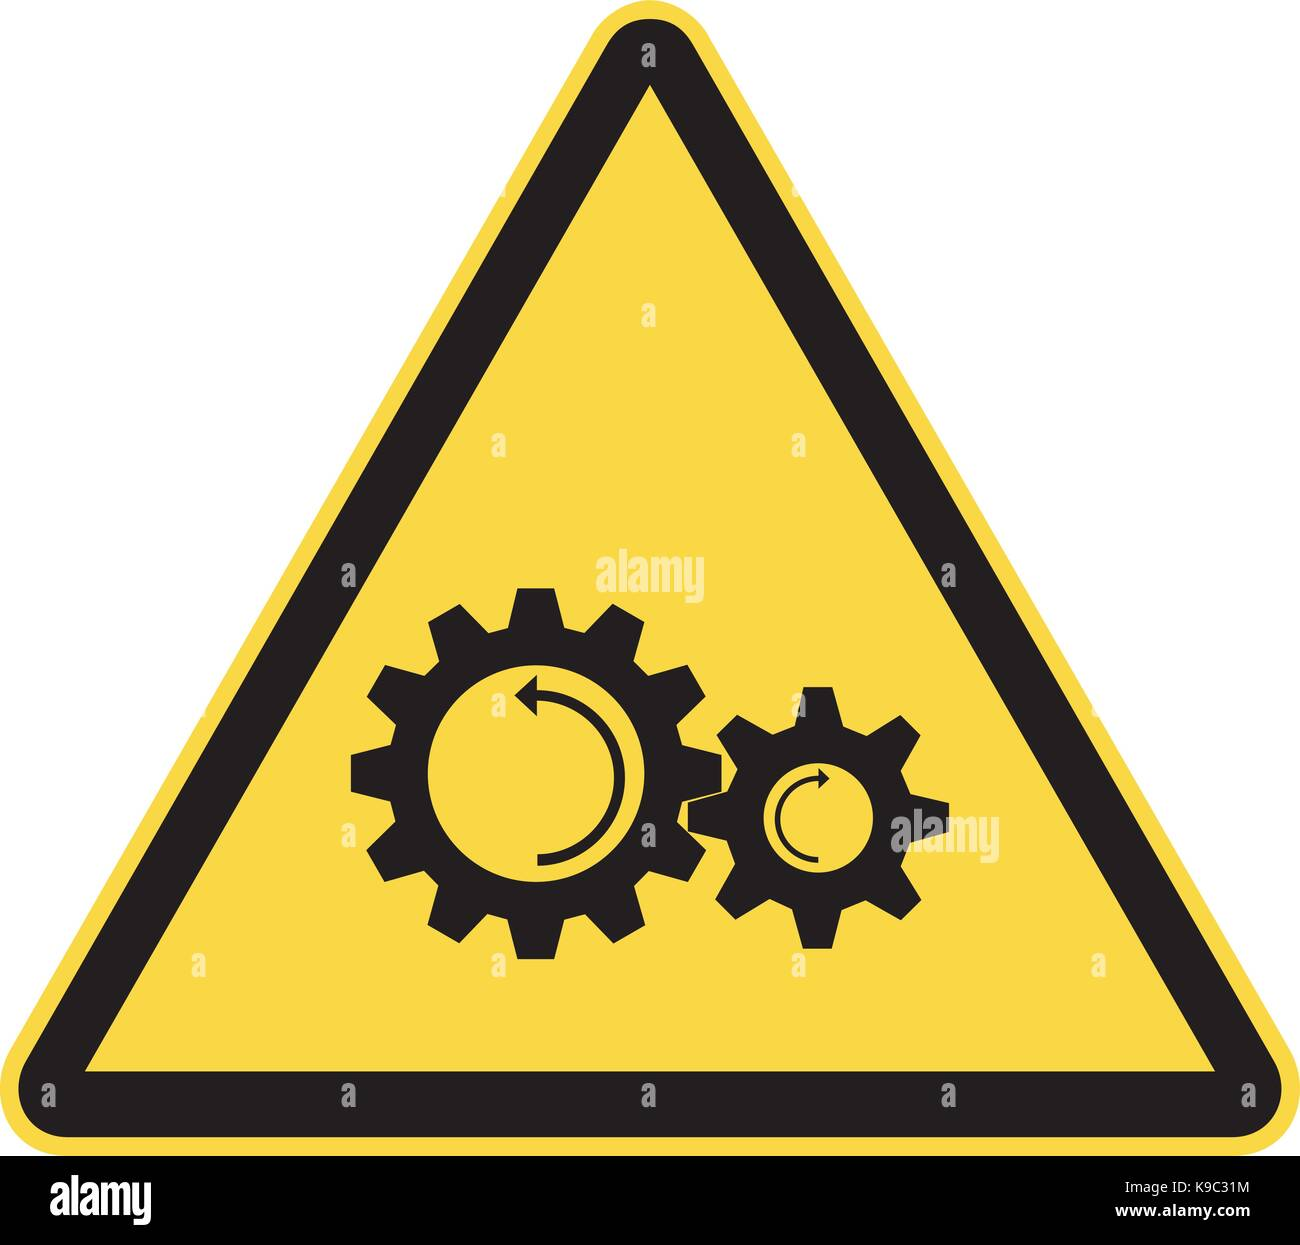 Rotating and moving parts warning signs Stock Vector